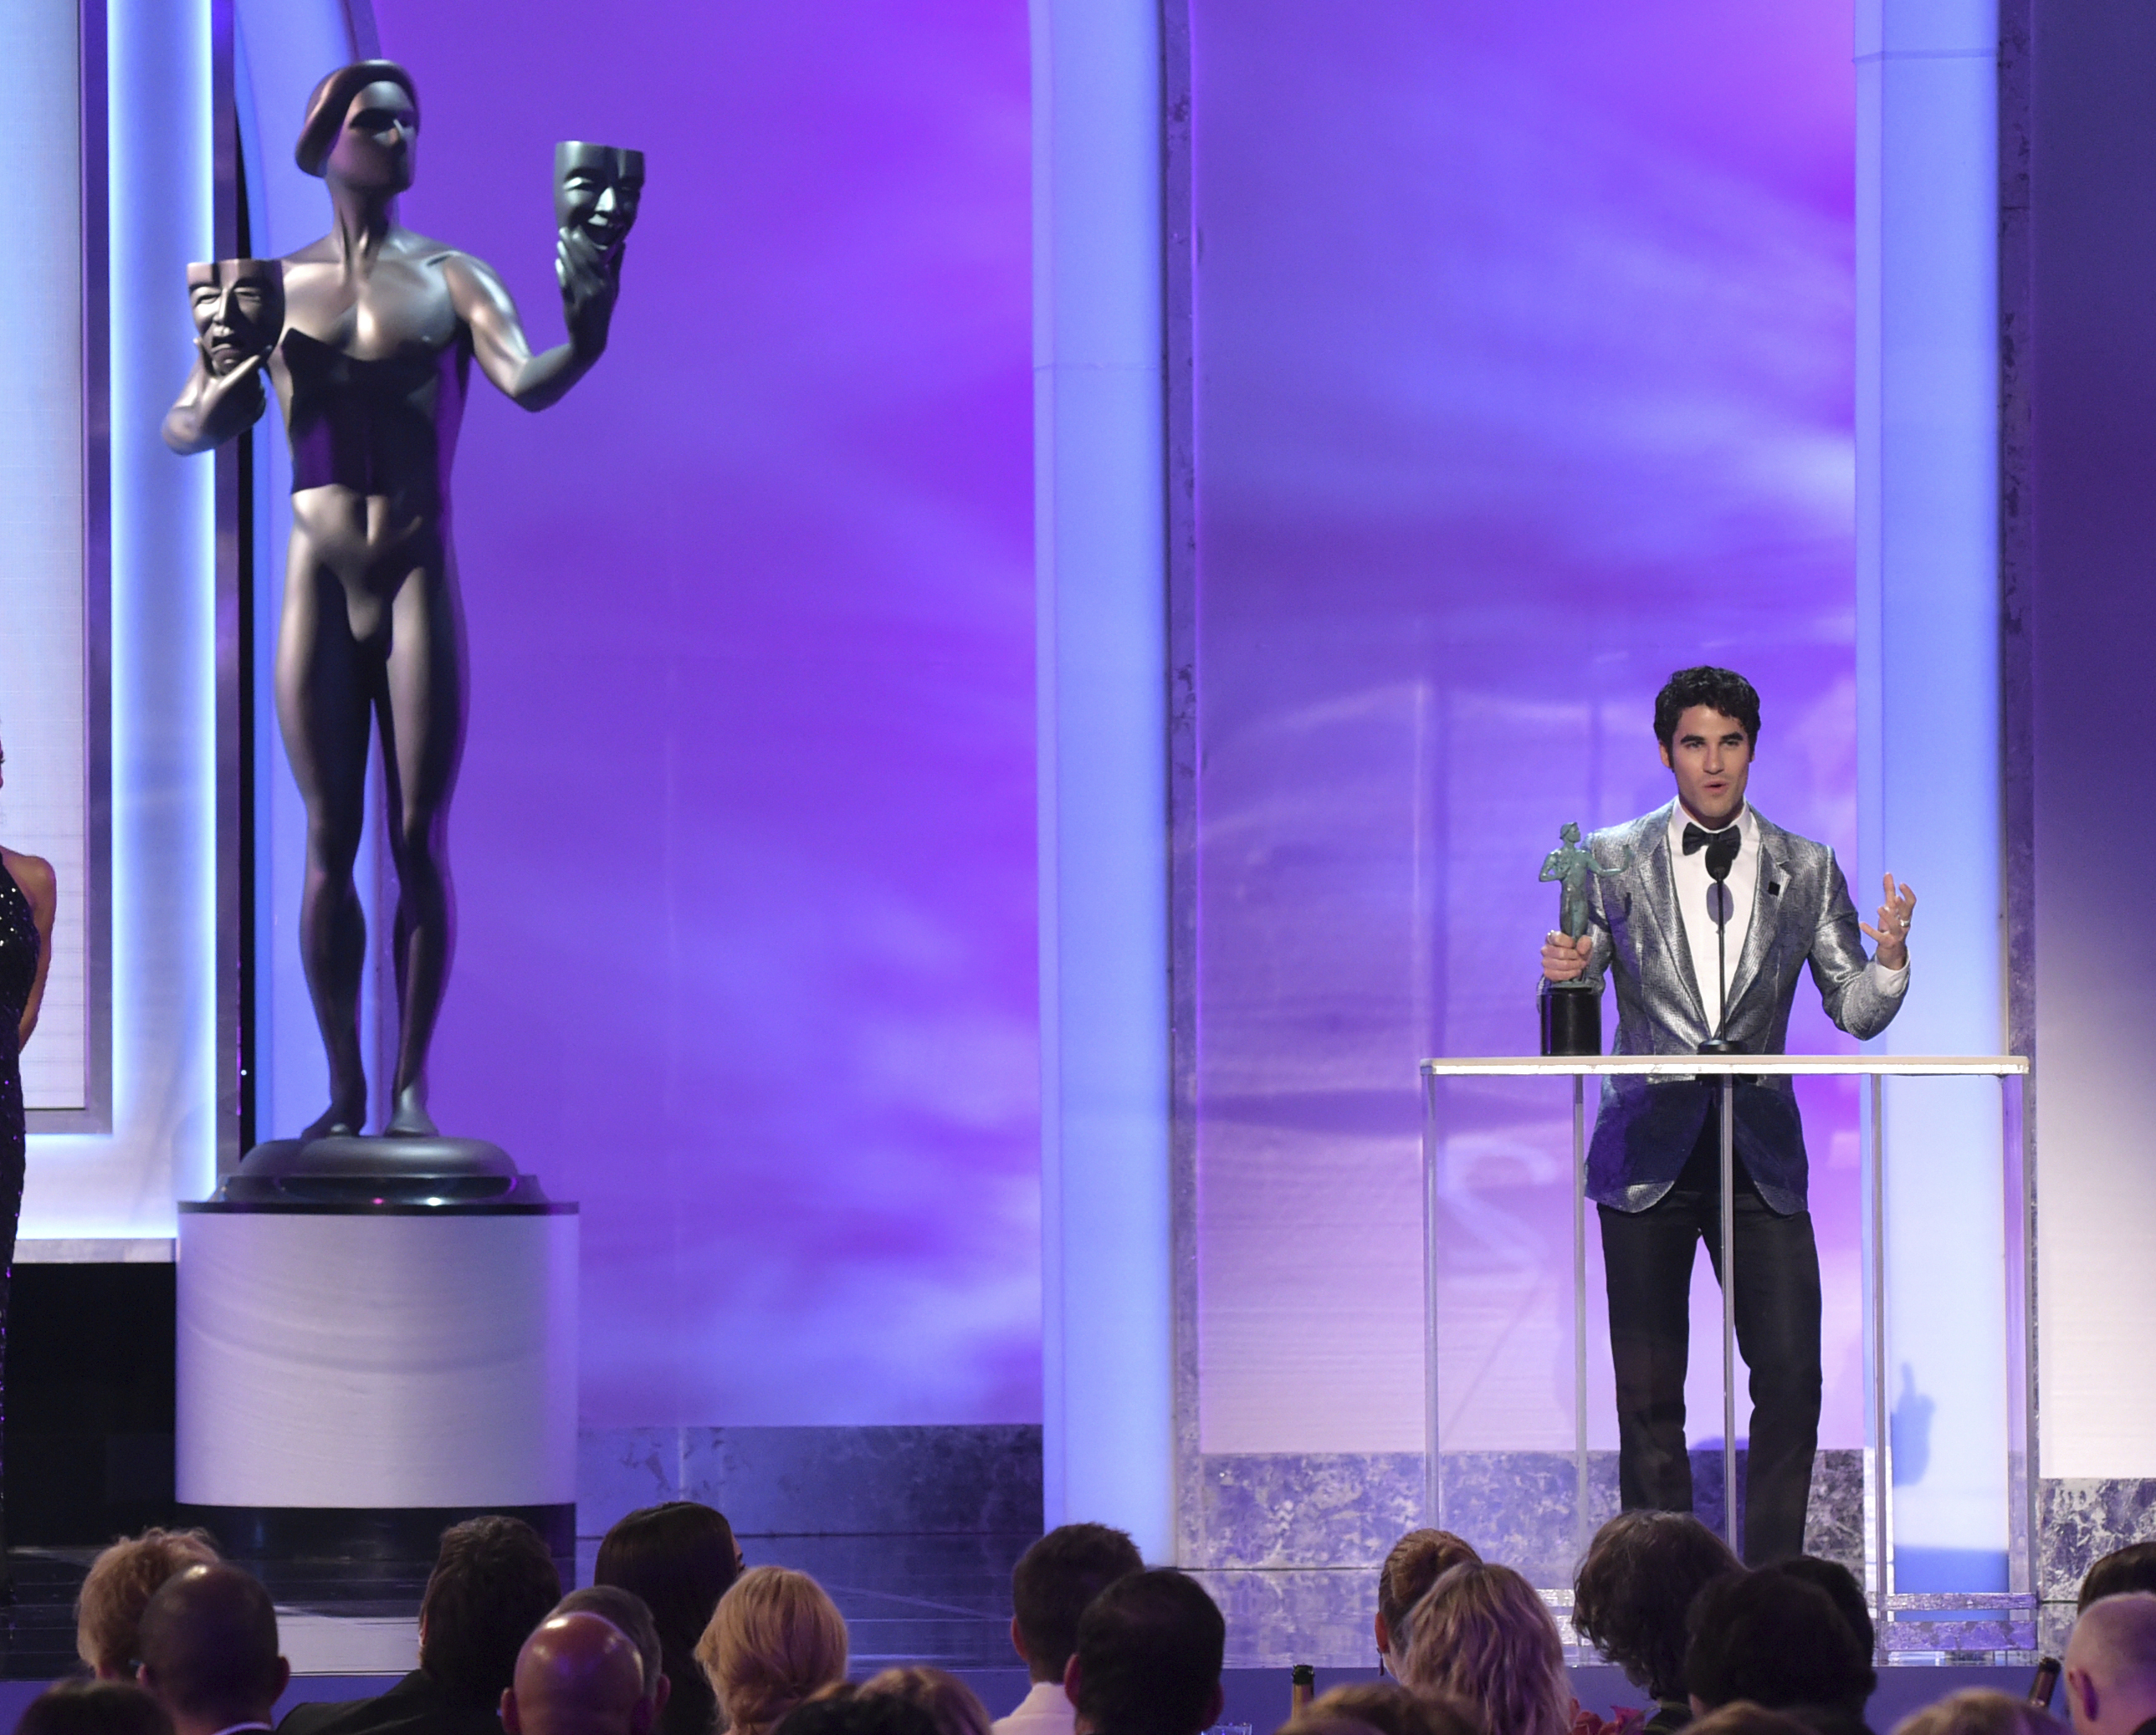 Darren Criss accepts the award for outstanding performance by a male actor in a television movie or limited series for